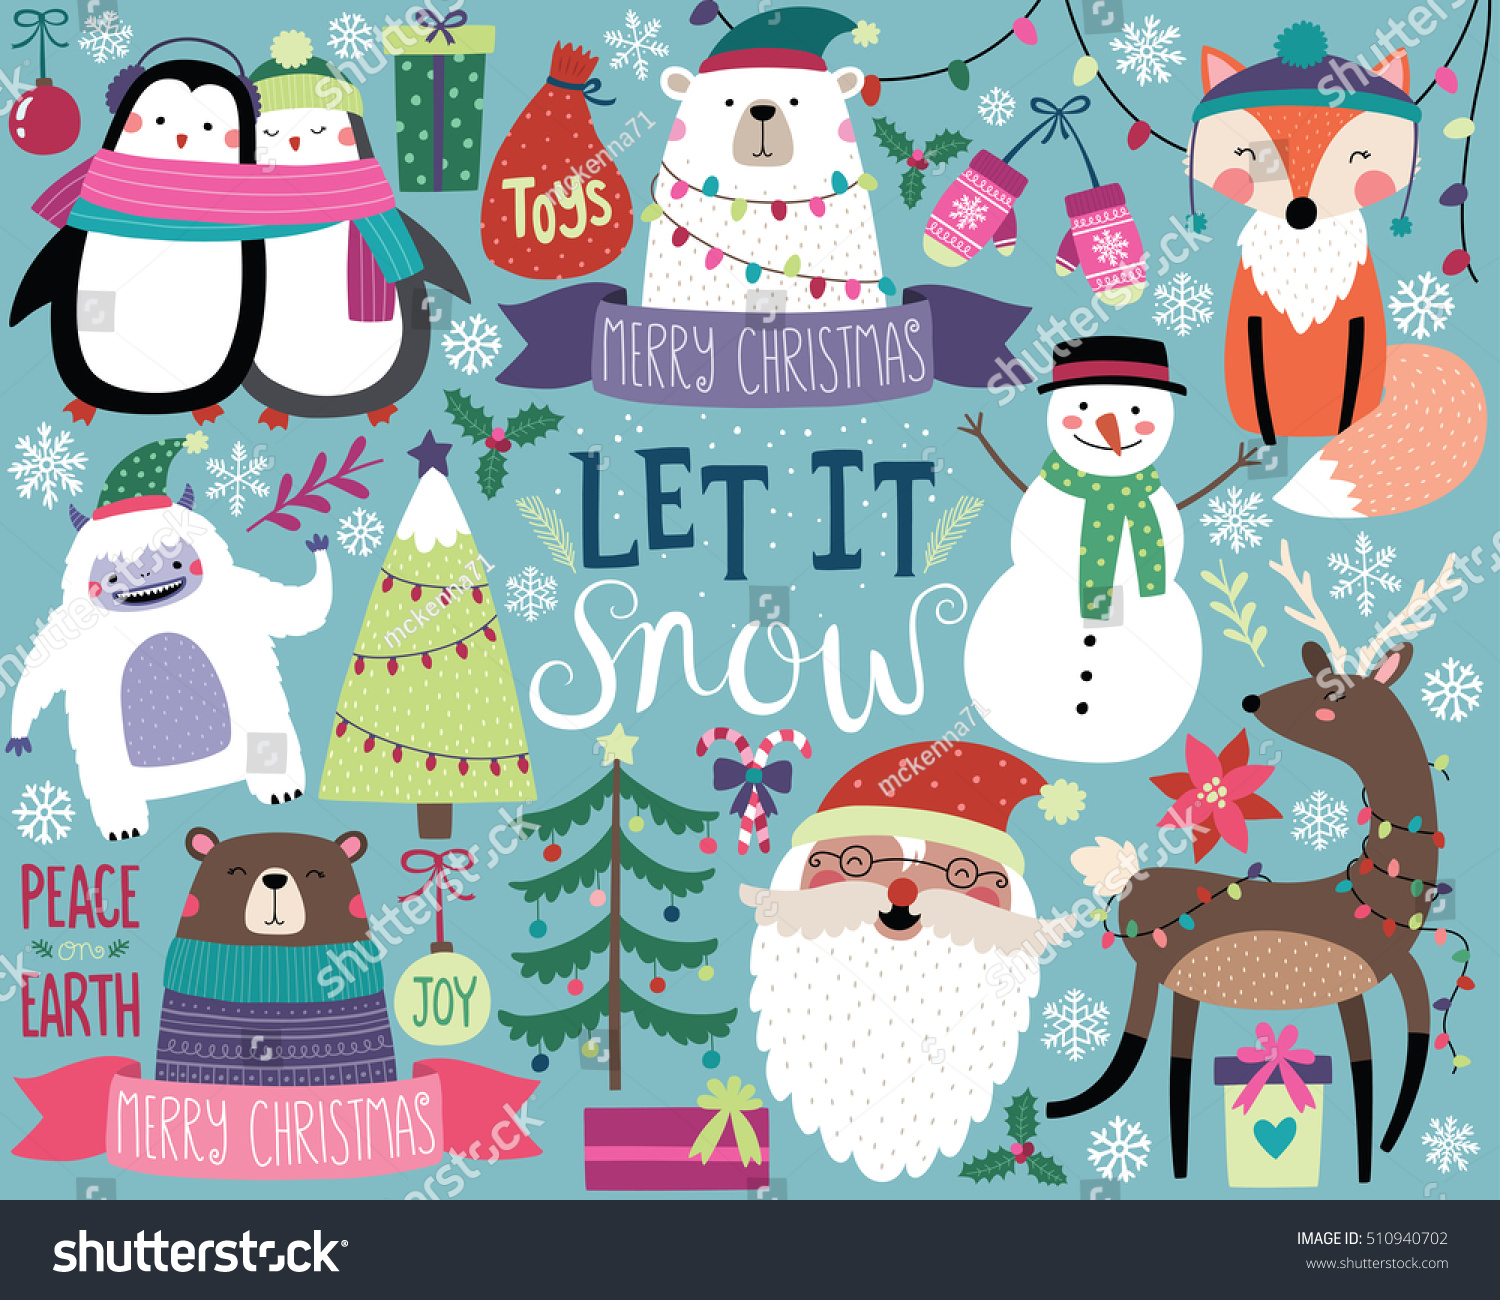 Cute Christmas Vector Illustration Bright Colorful Stock Vector Royalty Free 510940702